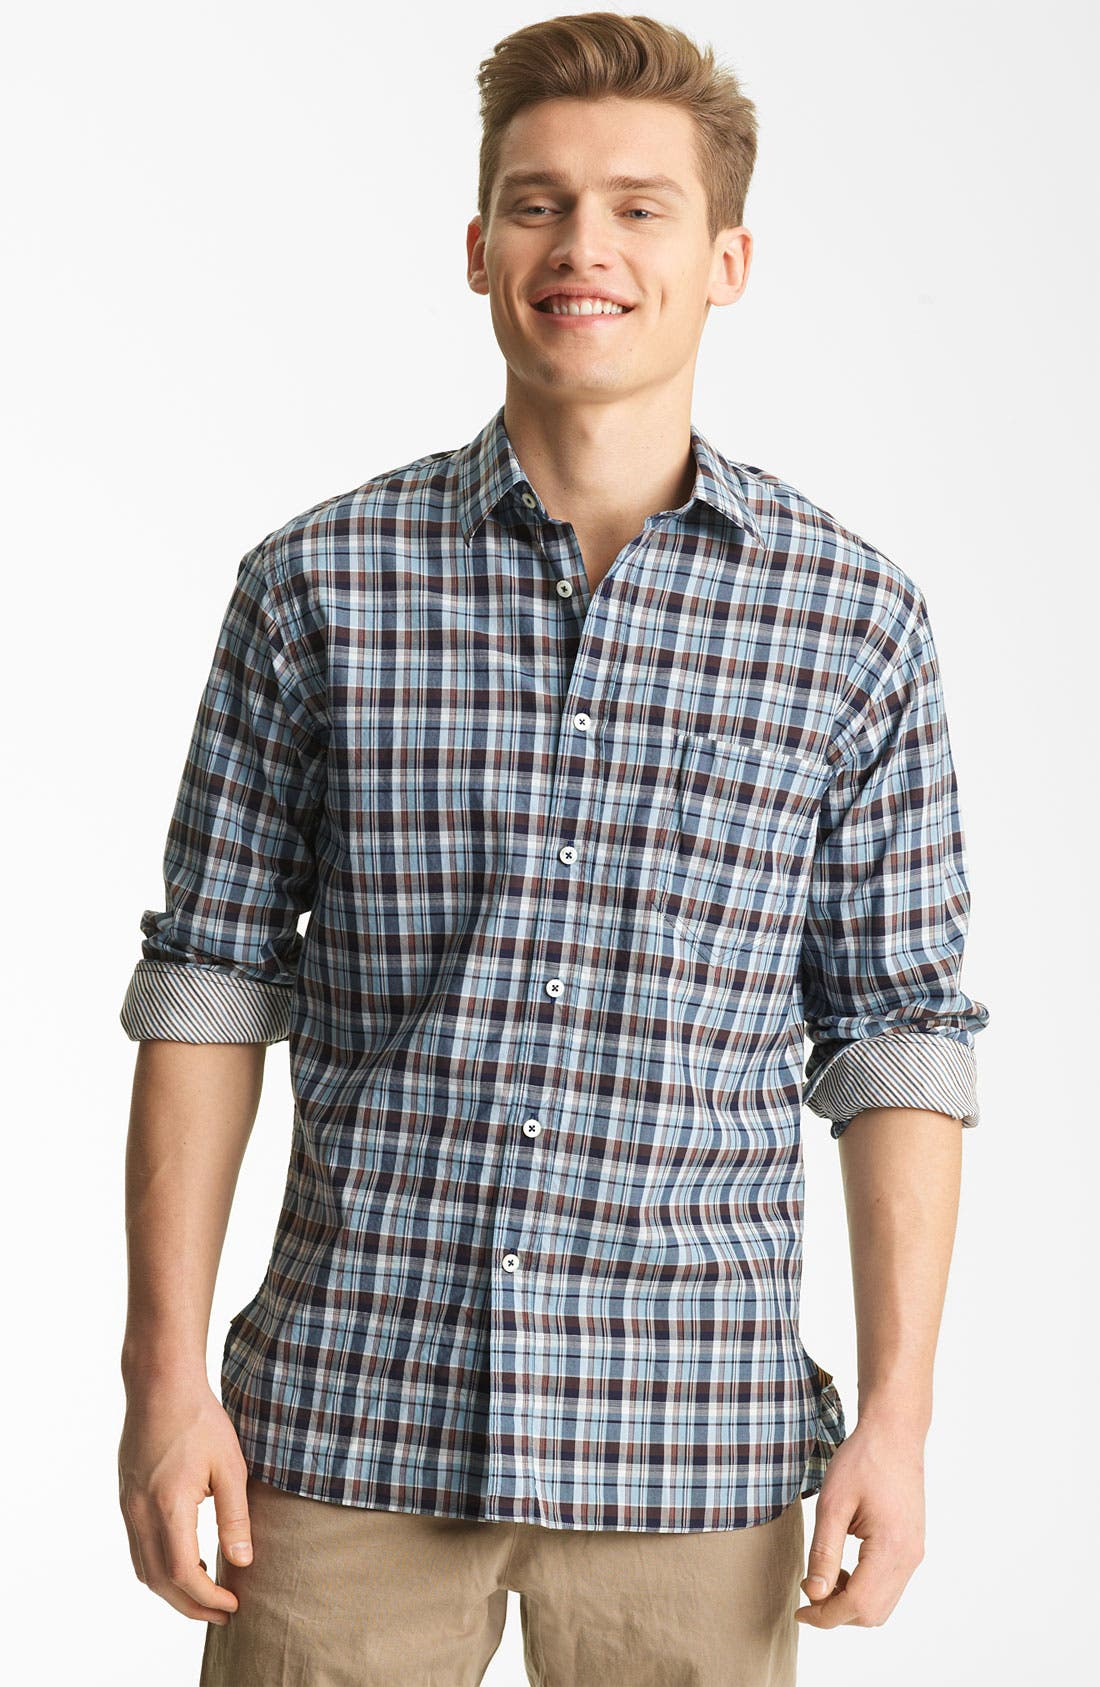 Alternate Image 1 Selected - Billy Reid 'Bagwelt' Plaid Woven Shirt